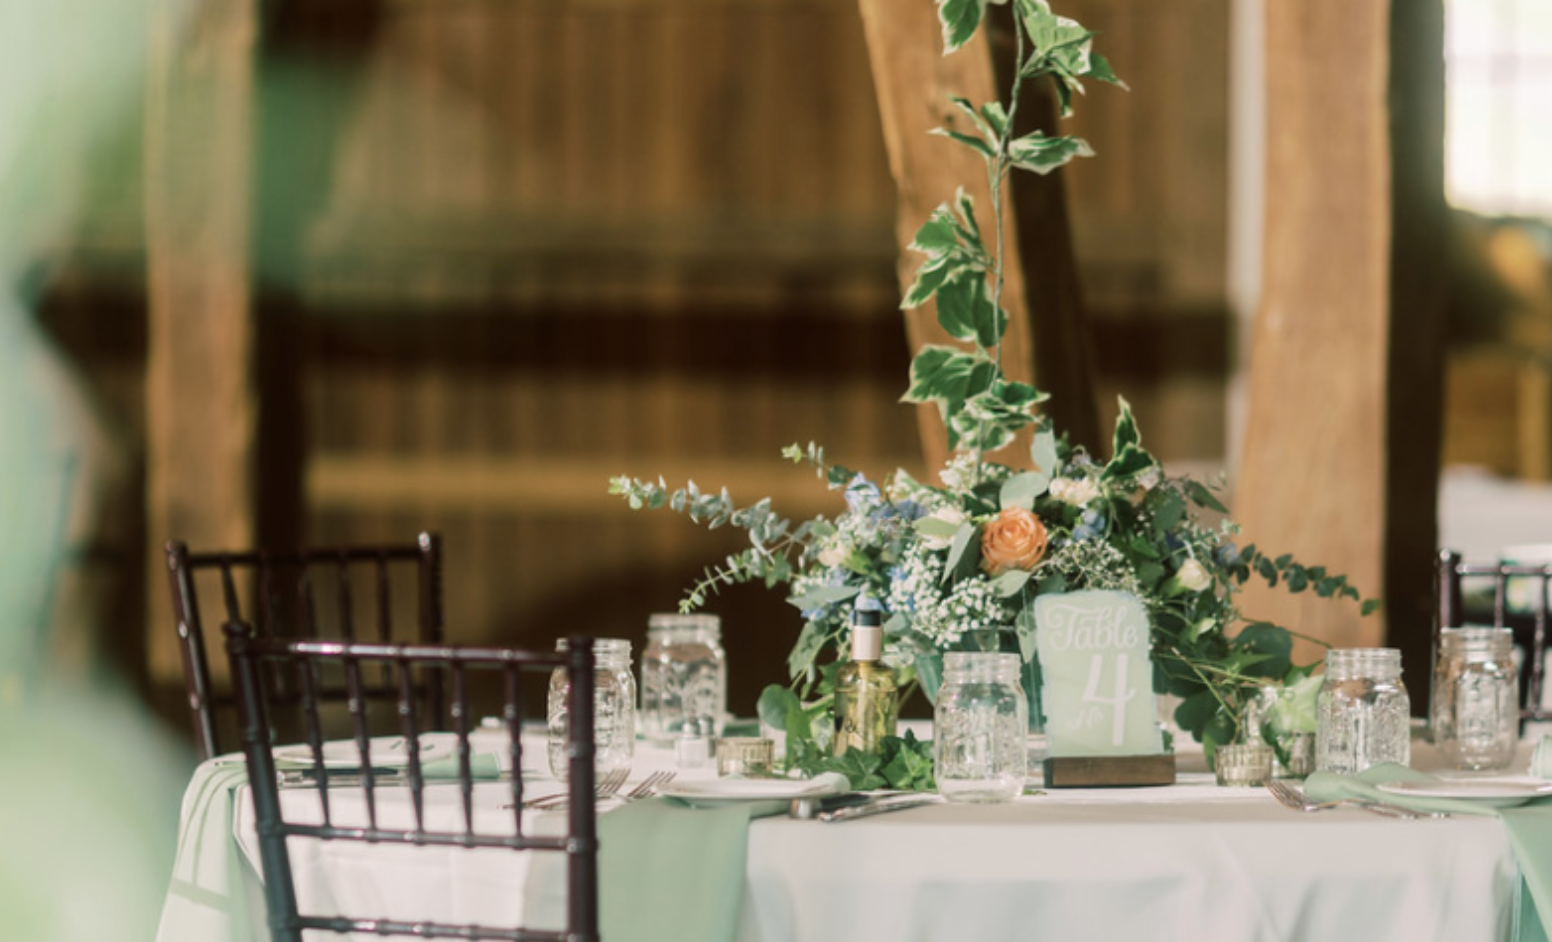 5 Reasons To Choose an Intimate Wedding Venue